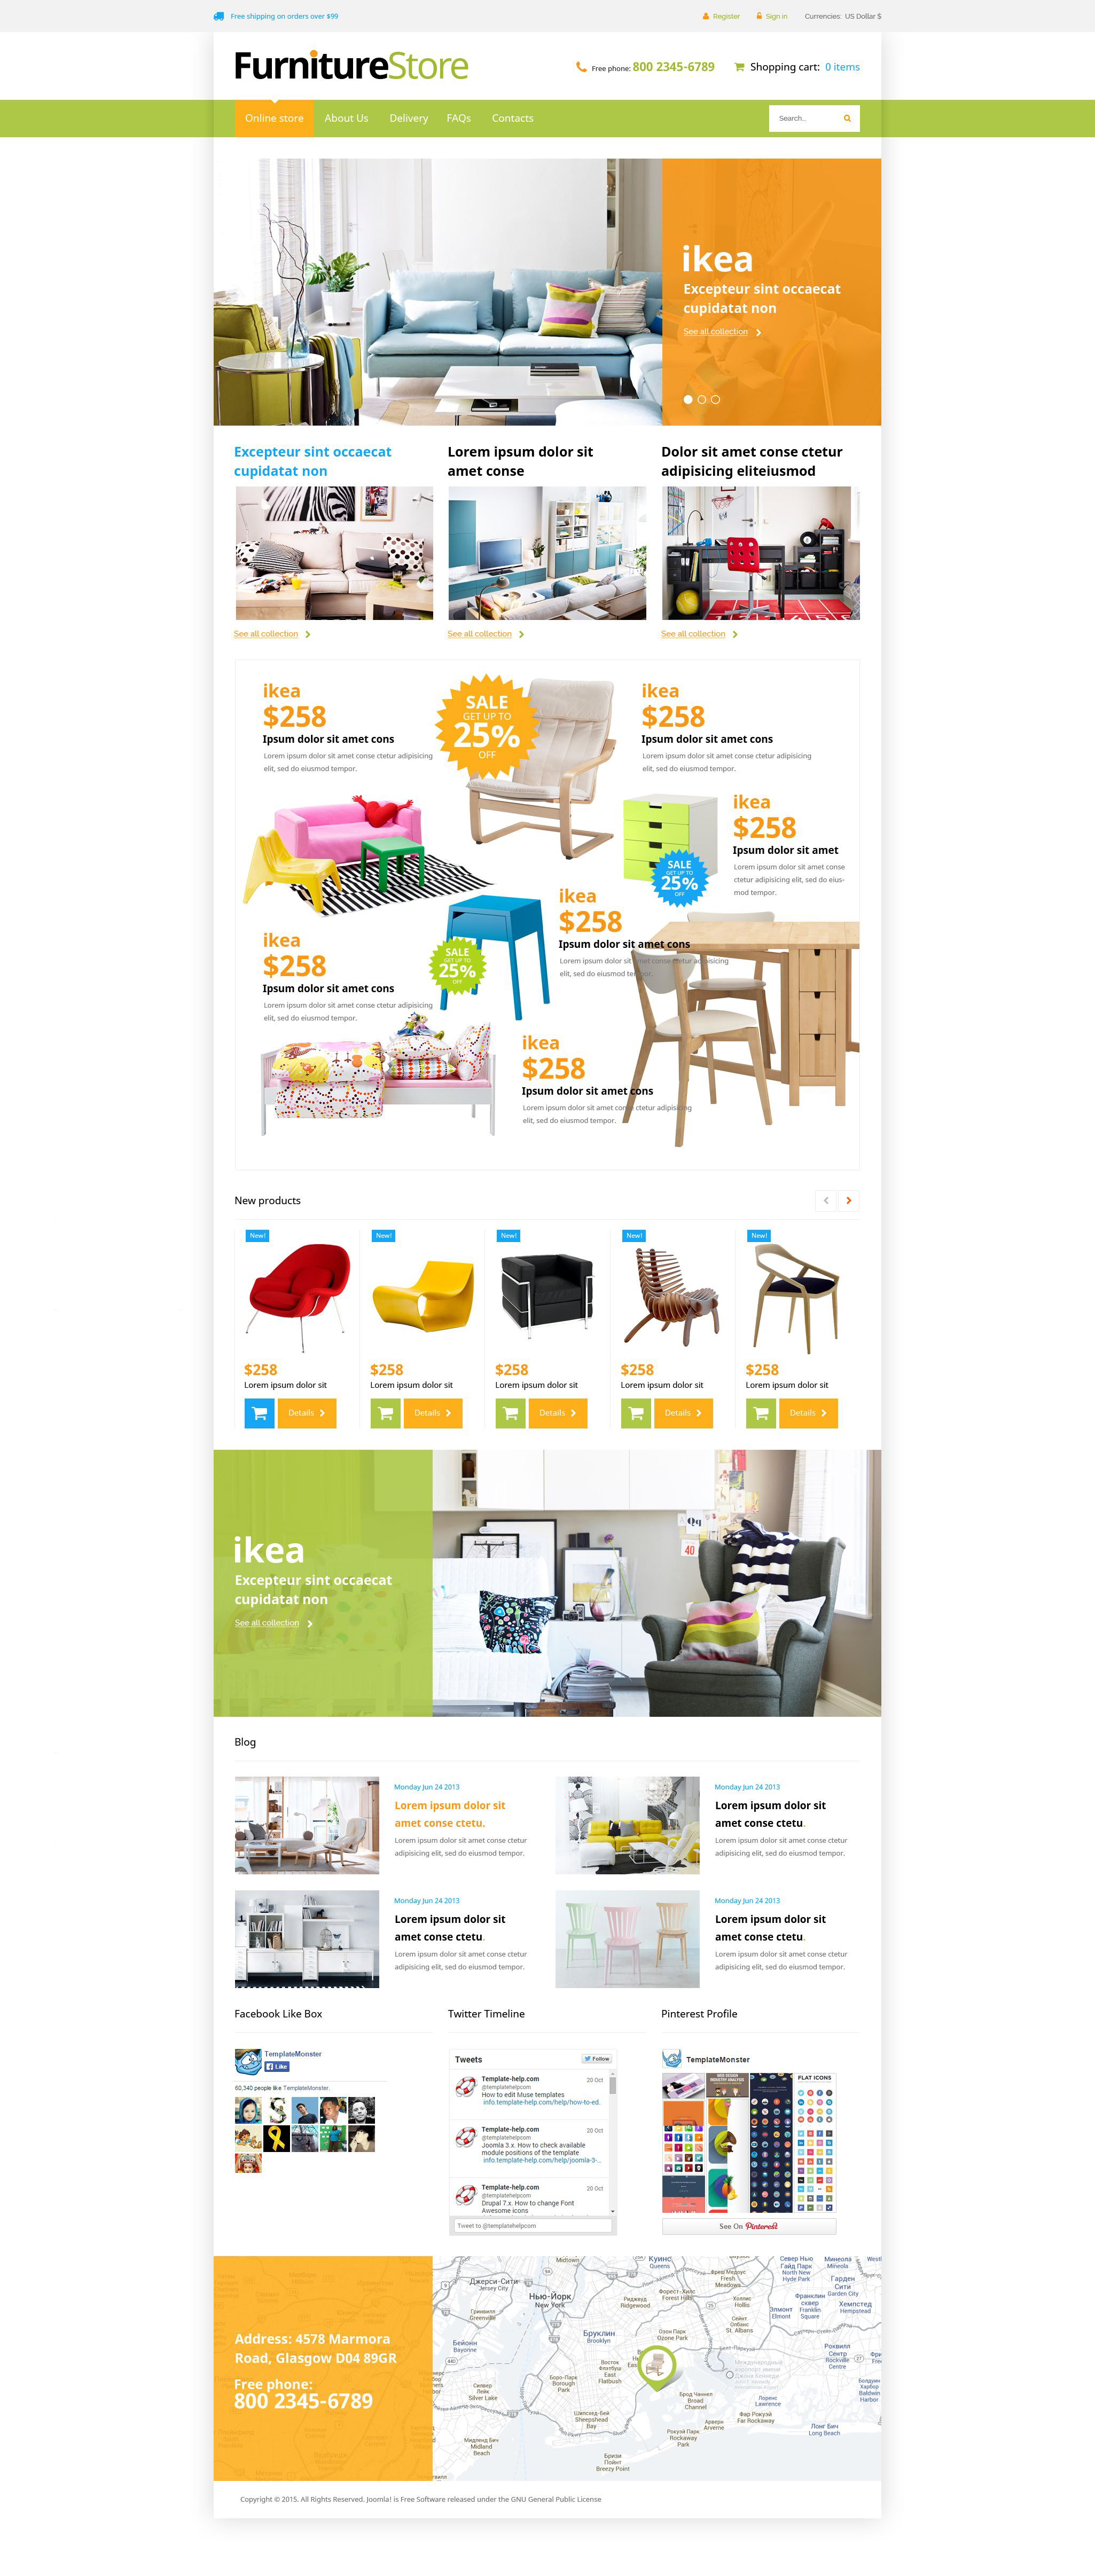 The Furniture Company Design VirtueMart Design 53640, one of the best VirtueMart templates of its kind (interior & furniture, most popular), also known as furniture company design VirtueMart template, home solution VirtueMart template, interior VirtueMart template, profile designer VirtueMart template, portfolio VirtueMart template, non-standard VirtueMart template, creative idea VirtueMart template, mirror VirtueMart template, clock VirtueMart template, cutlery VirtueMart template, lighting VirtueMart template, ceiling VirtueMart template, bathroom VirtueMart template, kitchen VirtueMart template, live VirtueMart template, table VirtueMart template, chair VirtueMart template, armchair VirtueMart template, sofa VirtueMart template, order VirtueMart template, client VirtueMart template, support VirtueMart template, service VirtueMart template, decoration VirtueMart template, style VirtueMart template, collection VirtueMart template, catalogue and related with furniture company design, home solution, interior, profile designer, portfolio, non-standard, creative idea, mirror, clock, cutlery, lighting, ceiling, bathroom, kitchen, live, table, chair, armchair, sofa, order, client, support, service, decoration, style, collection, catalogue, etc.